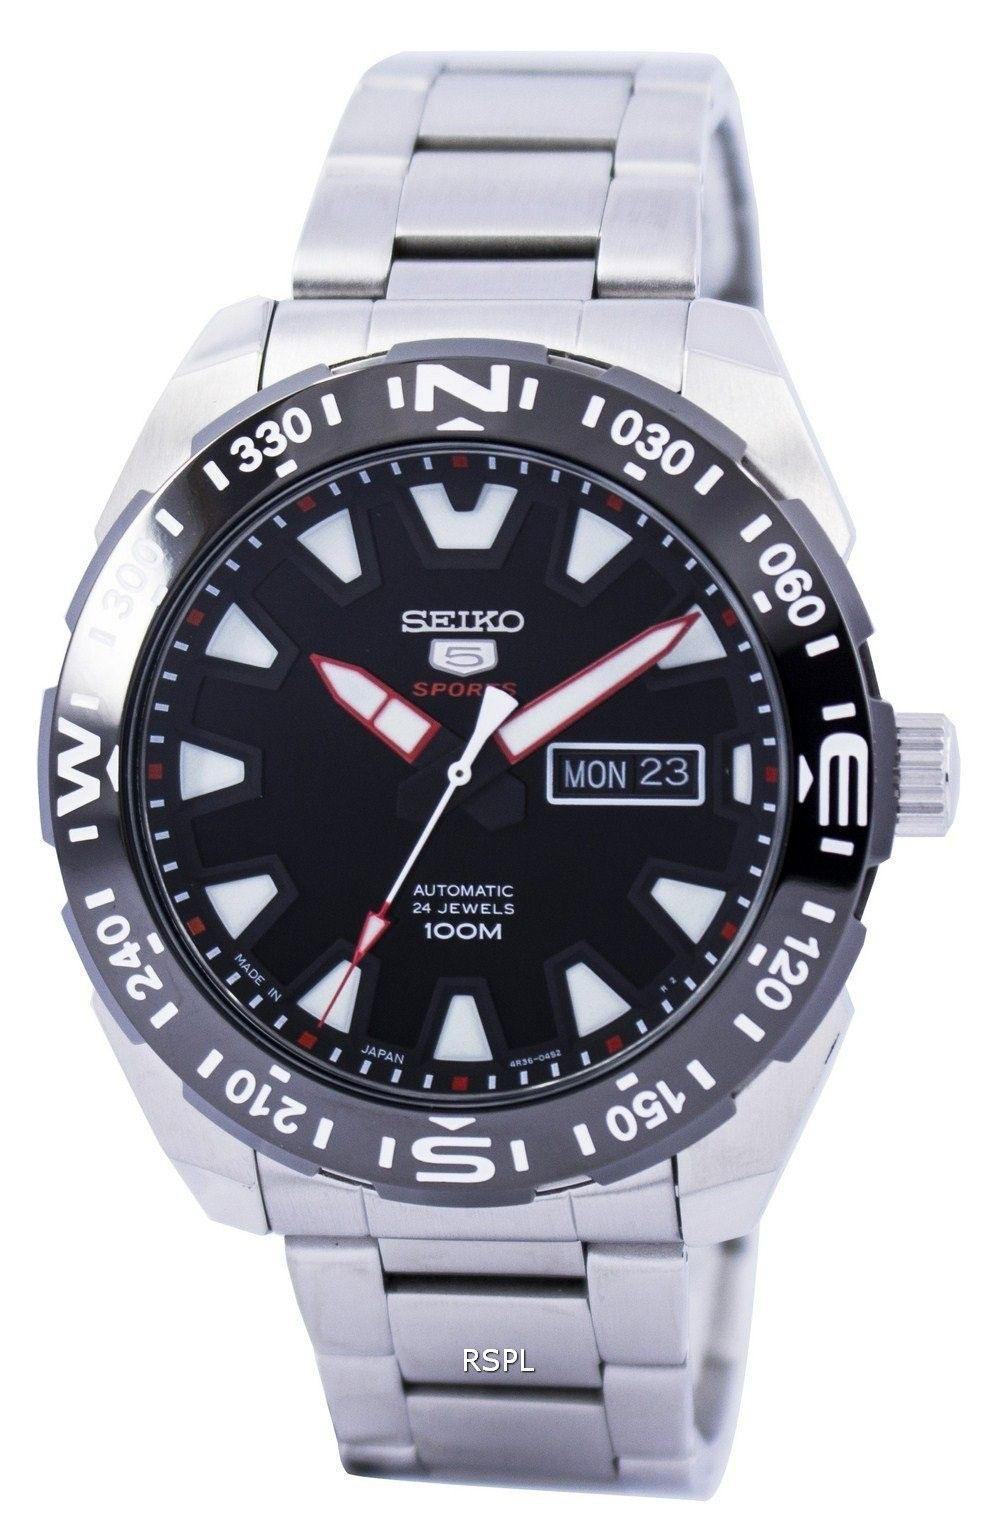 29fcc528609 Seiko 5 Sports Automatic 24 Jewels Japan Made SRP743 SRP743J1 SRP743J Men s  Watch